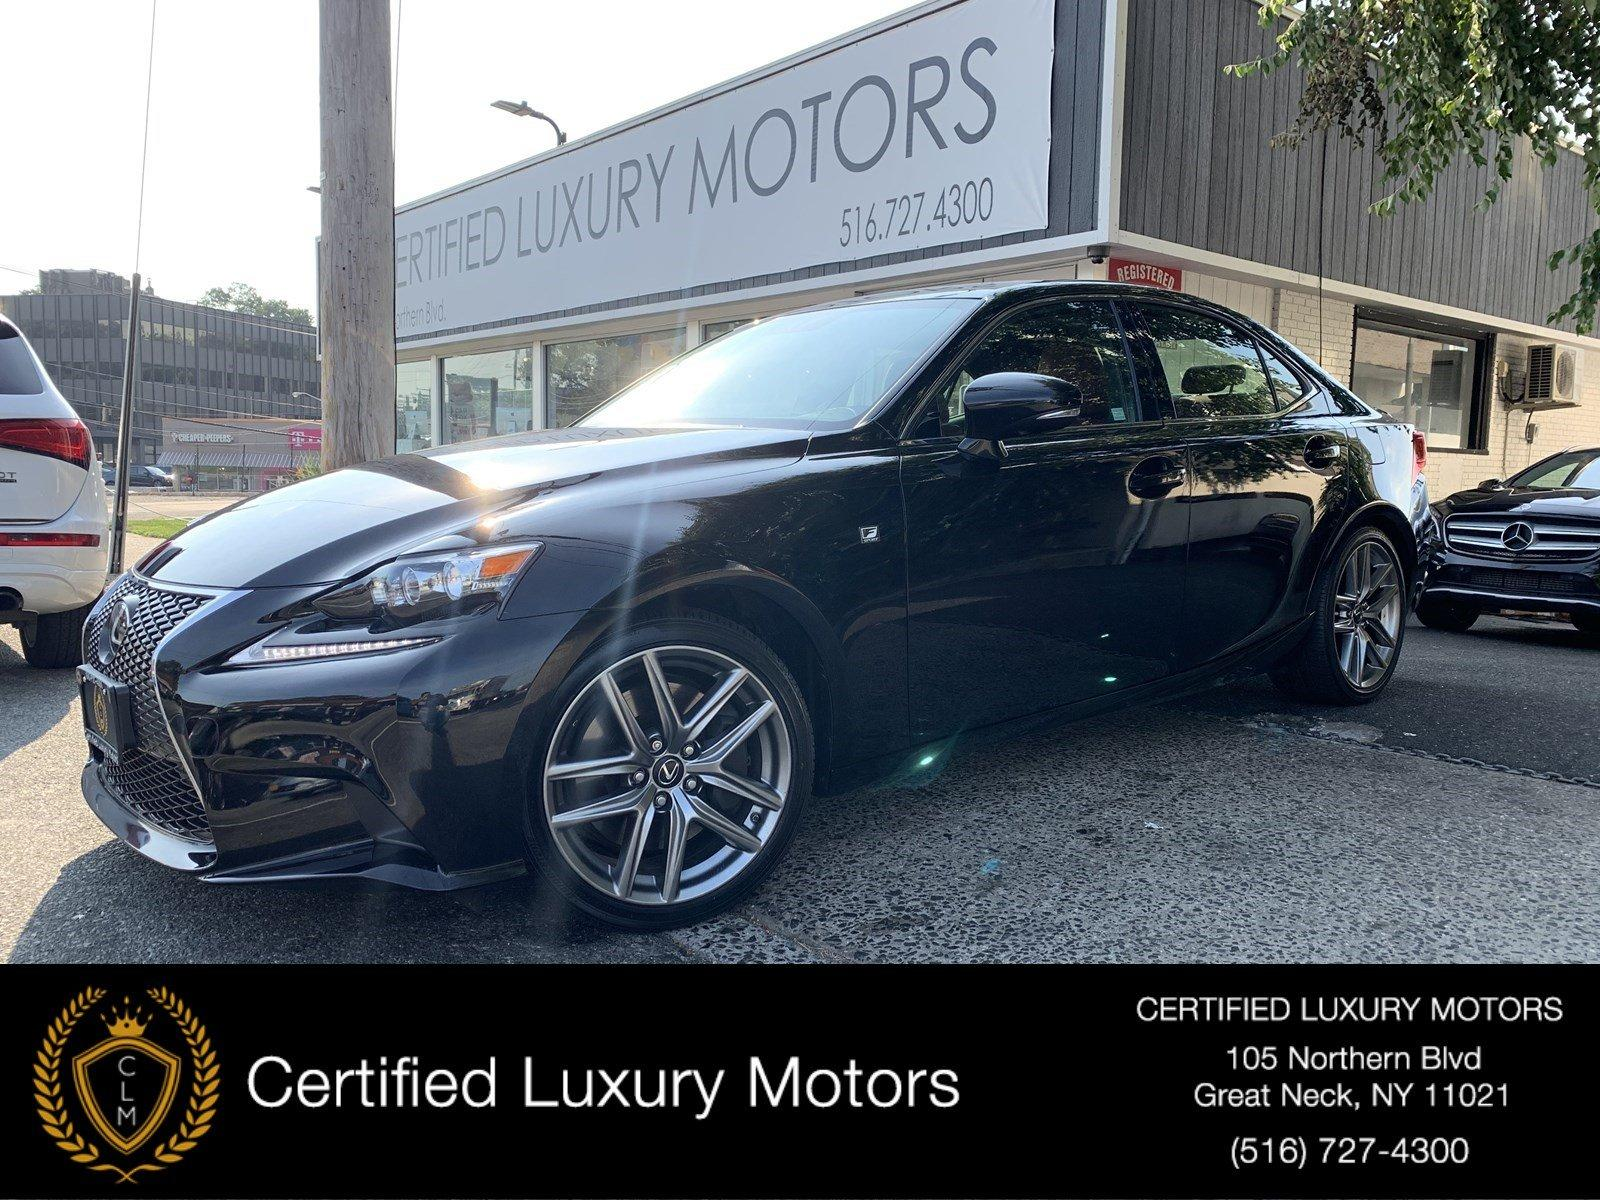 Used 2016 Lexus IS 300 F-Sport (Red Interior)  | Great Neck, NY